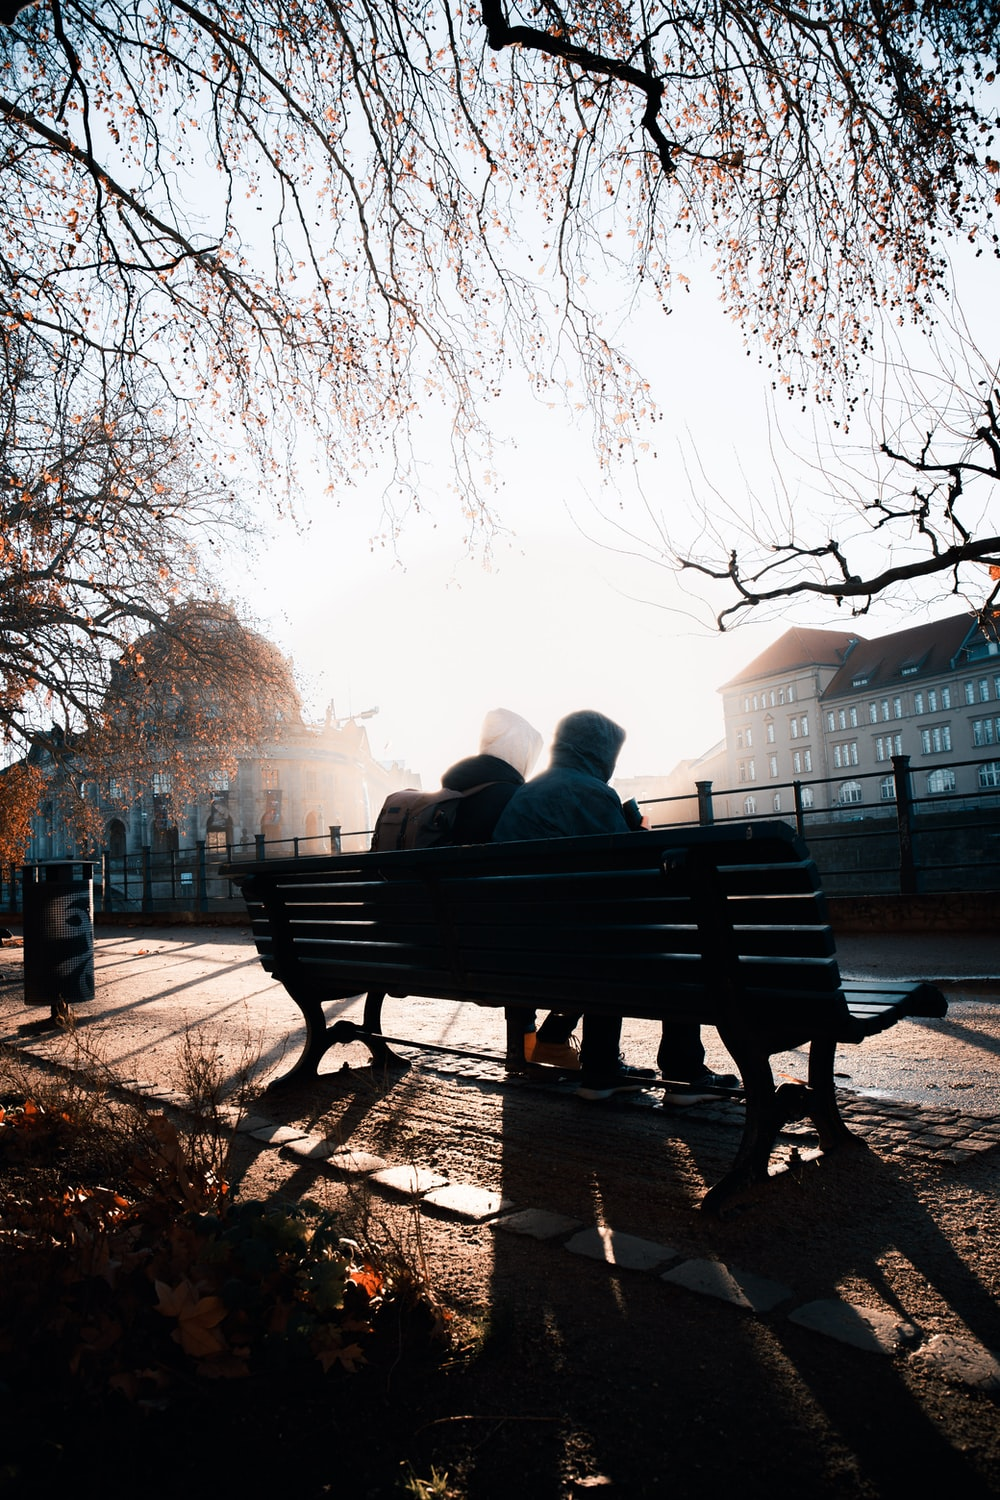 couple sitting on bench during daytime